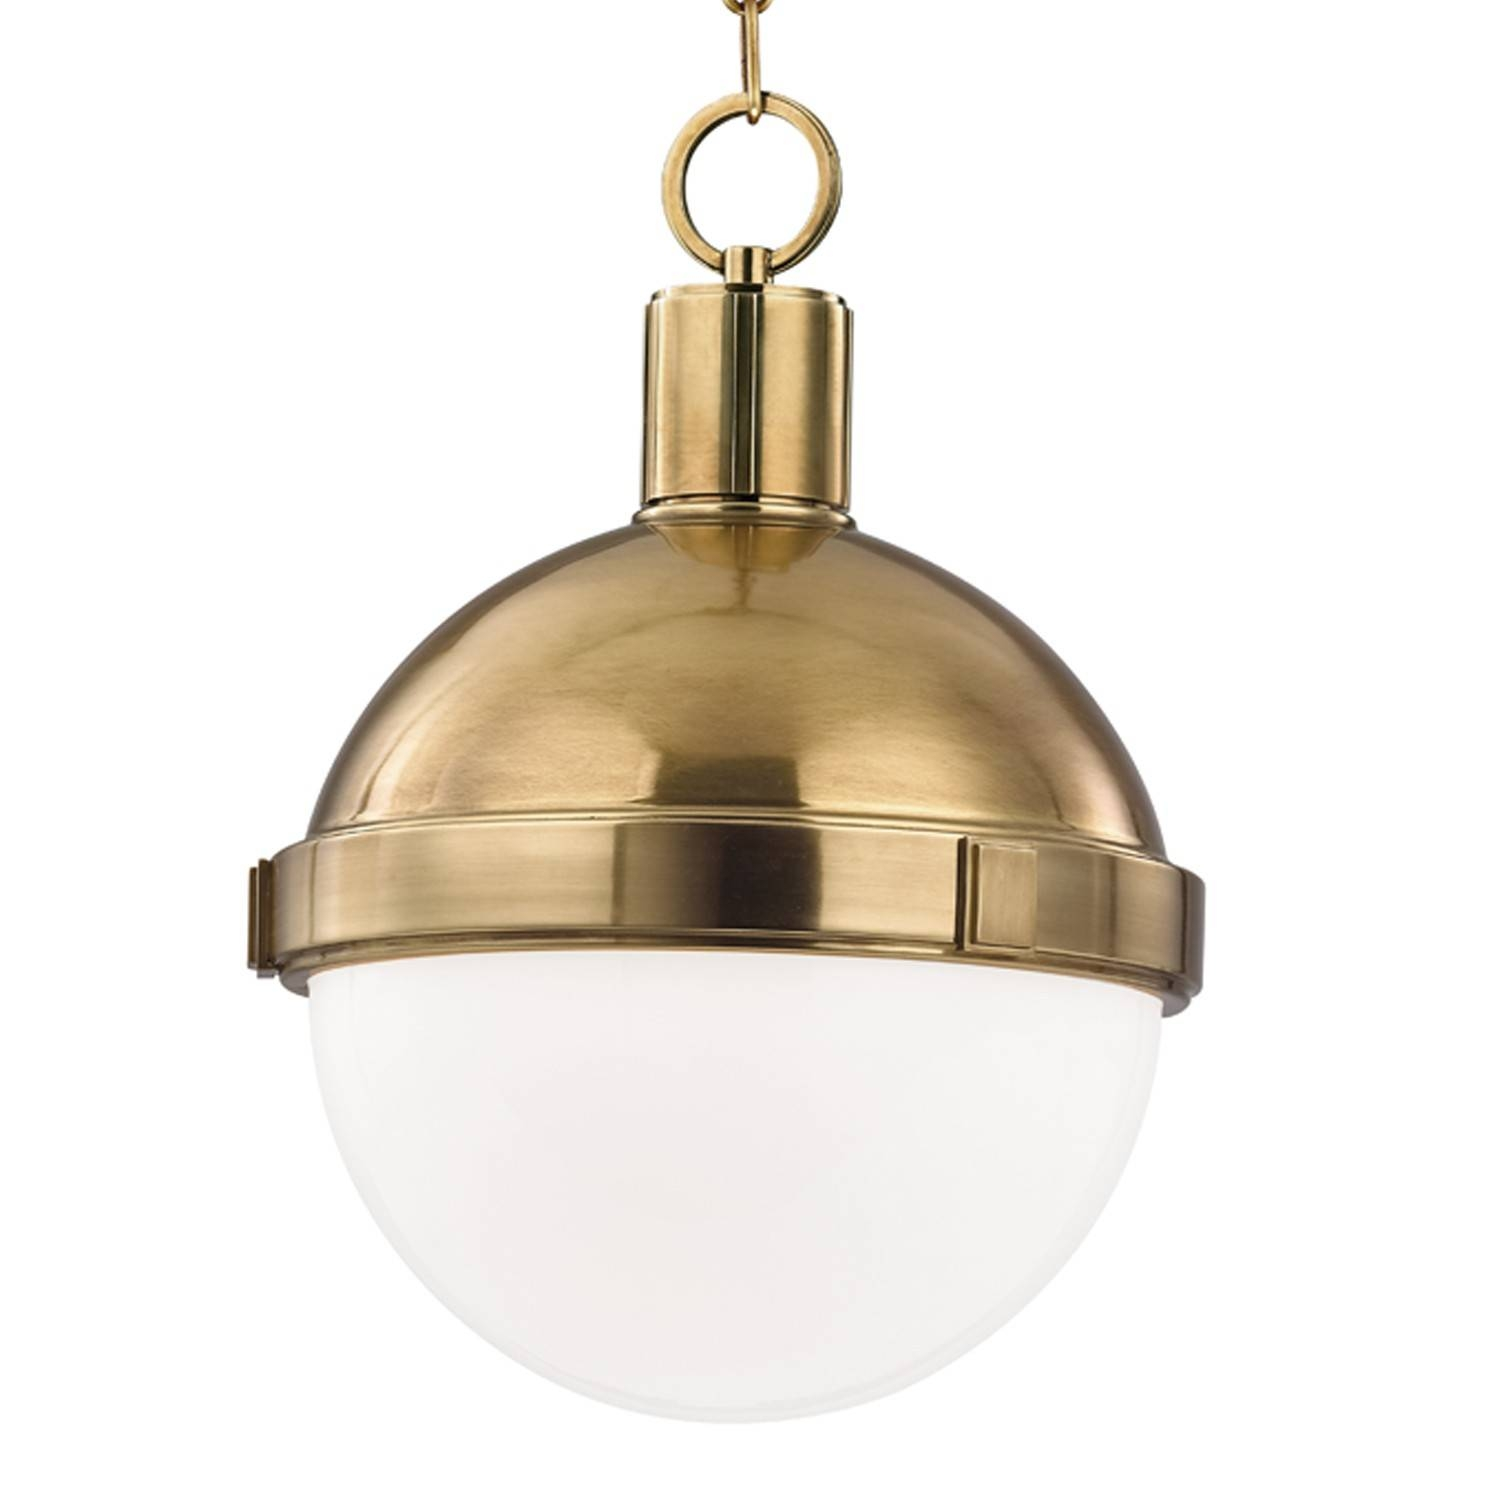 Restoration Warehouse Lambert Pendant - Aged Brass | Candelabra, Inc. within Small Hicks Pendants (Image 11 of 15)